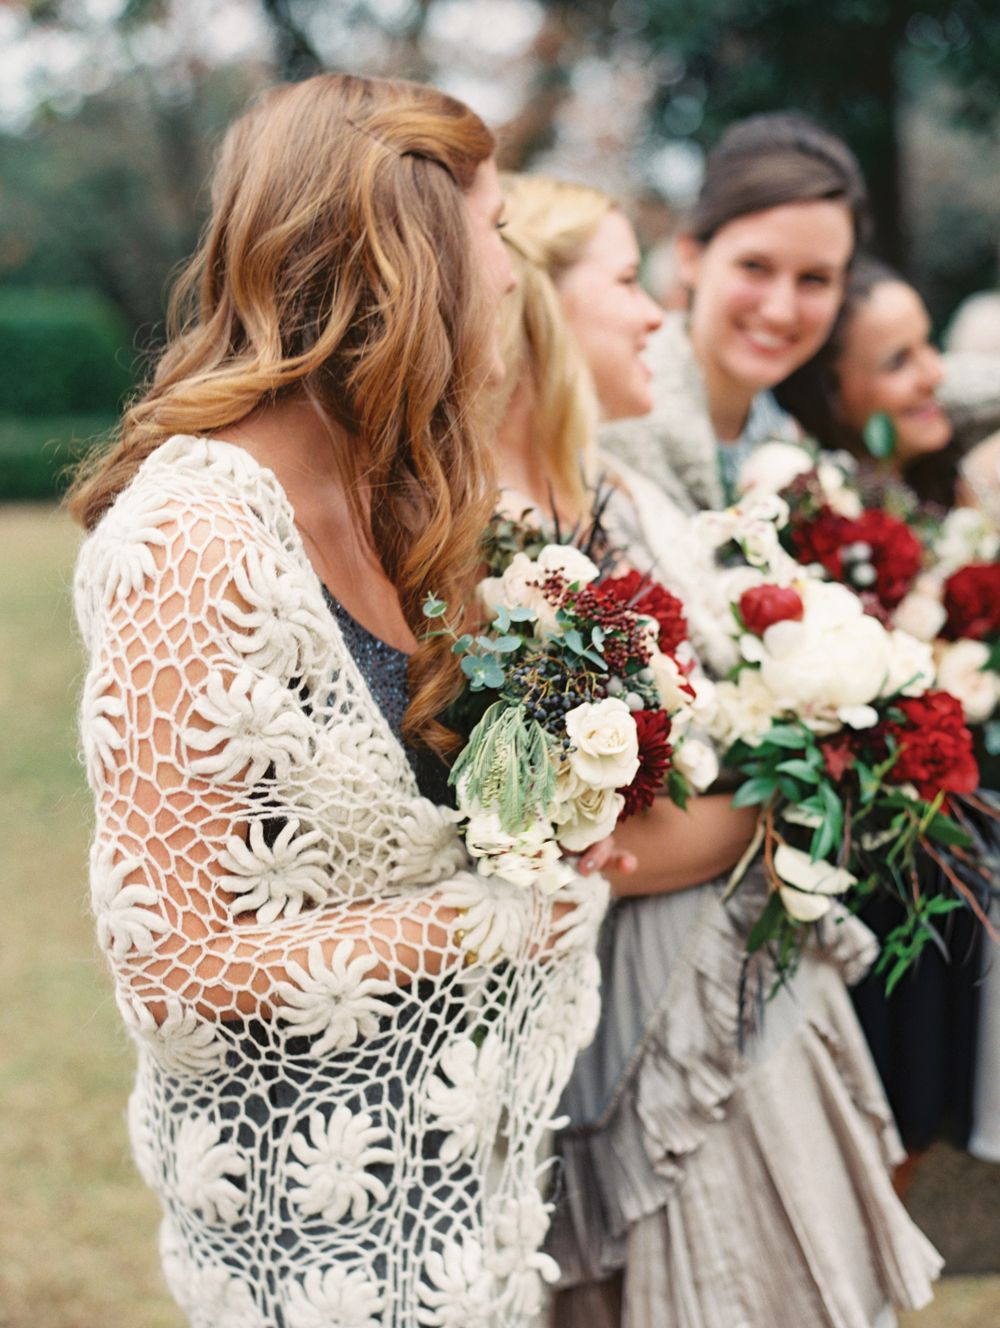 Autumn bridesmaids with beautiful knit wrap dresses in a variety of